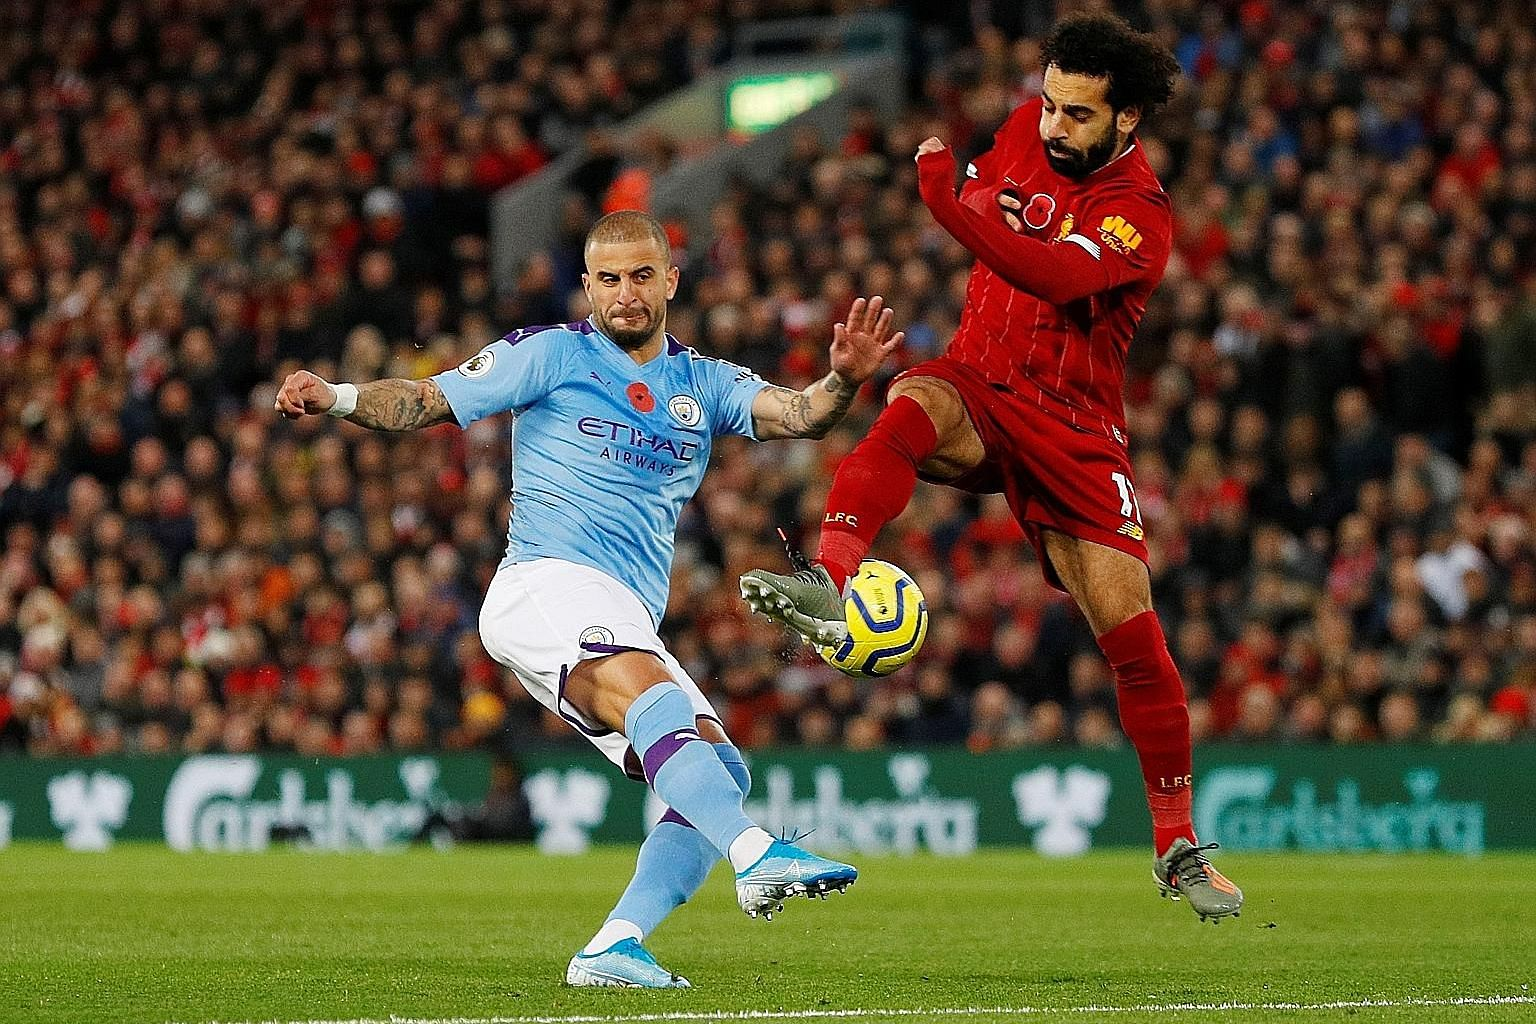 Manchester City's Kyle Walker tussling with Liverpool's Mohamed Salah at Anfield last month but the expected two-horse race between the sides has not materialised. PHOTOS: REUTERS